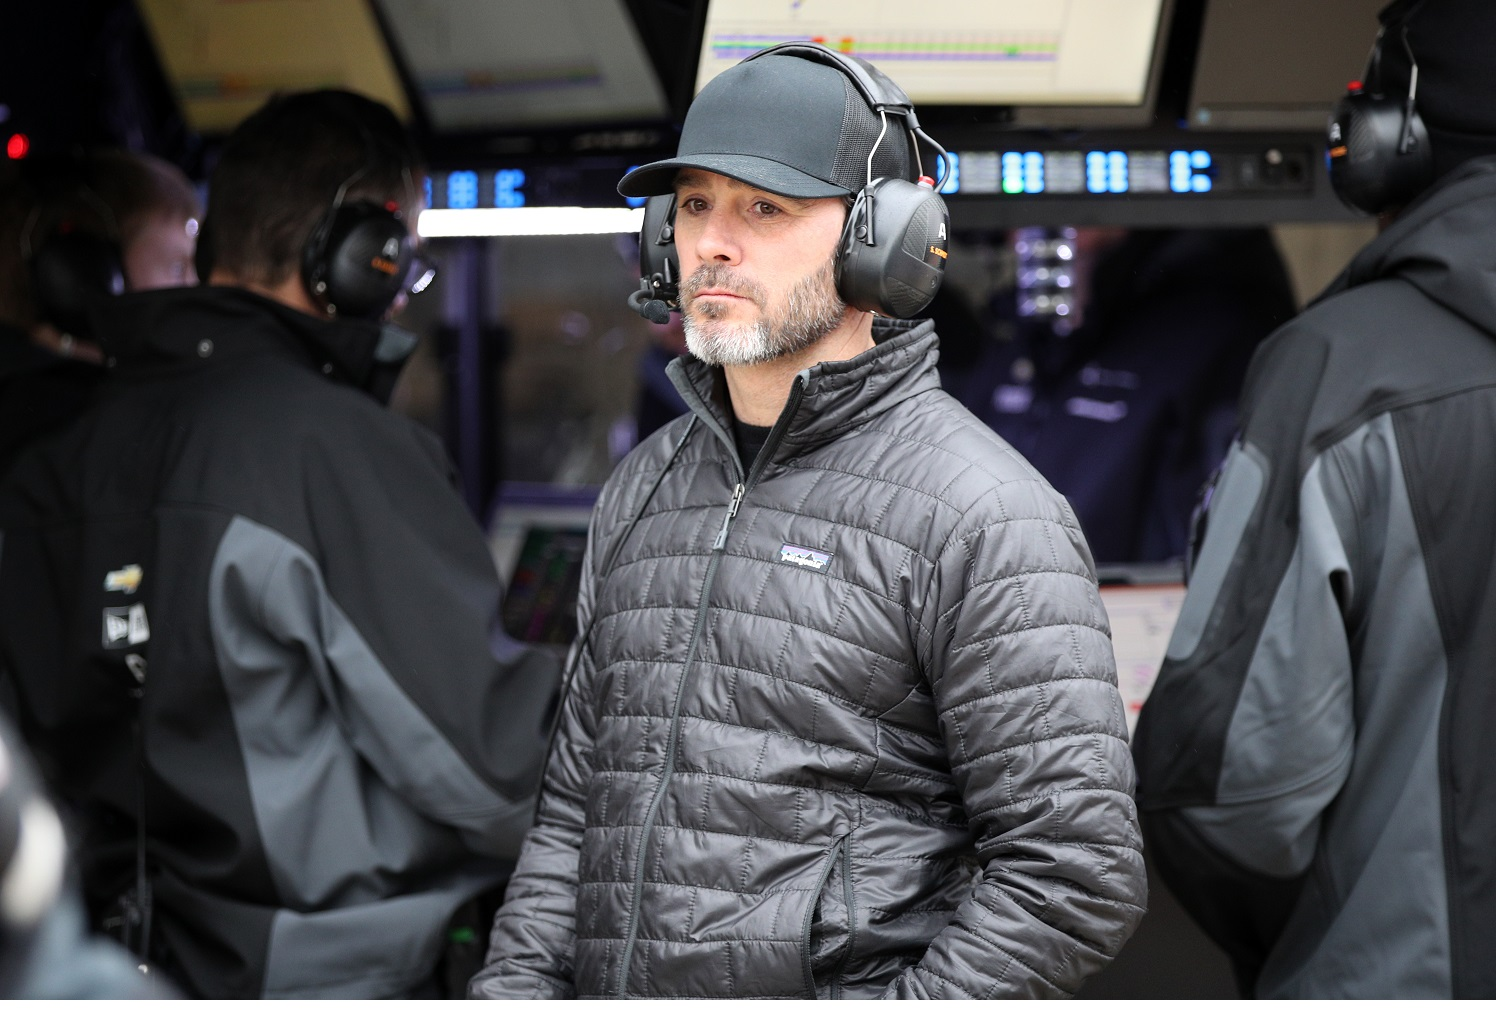 Seven-time NASCAR Cup Series champion Jimmie Johnson is an IndyCar rookie in 2021 for Chip Ganassi Racing.   Chris Graythen/Getty Images